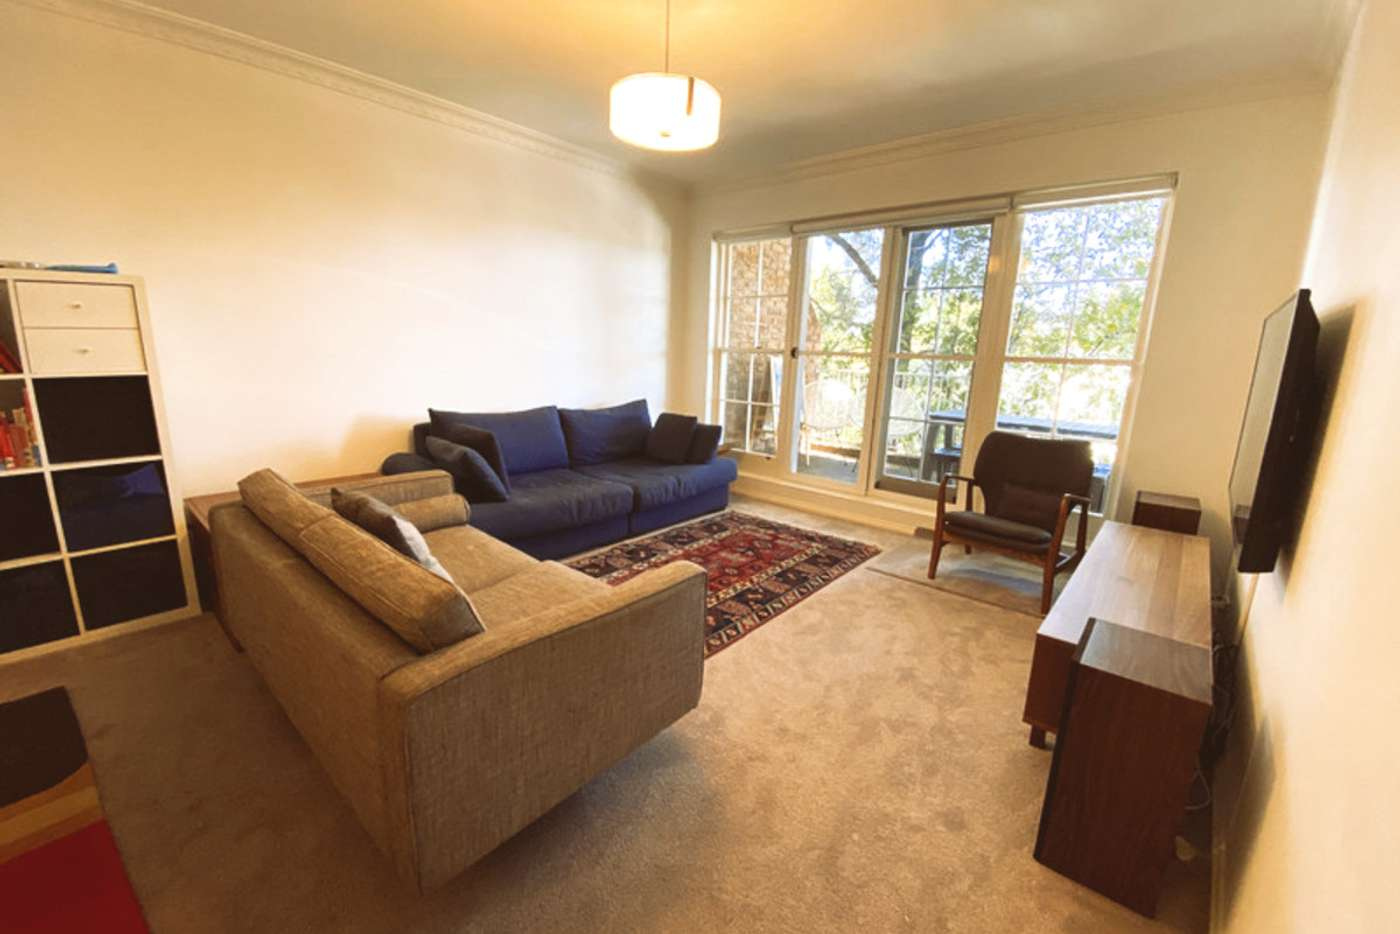 Sixth view of Homely apartment listing, 4/13-15 Morton Street, Wollstonecraft NSW 2065